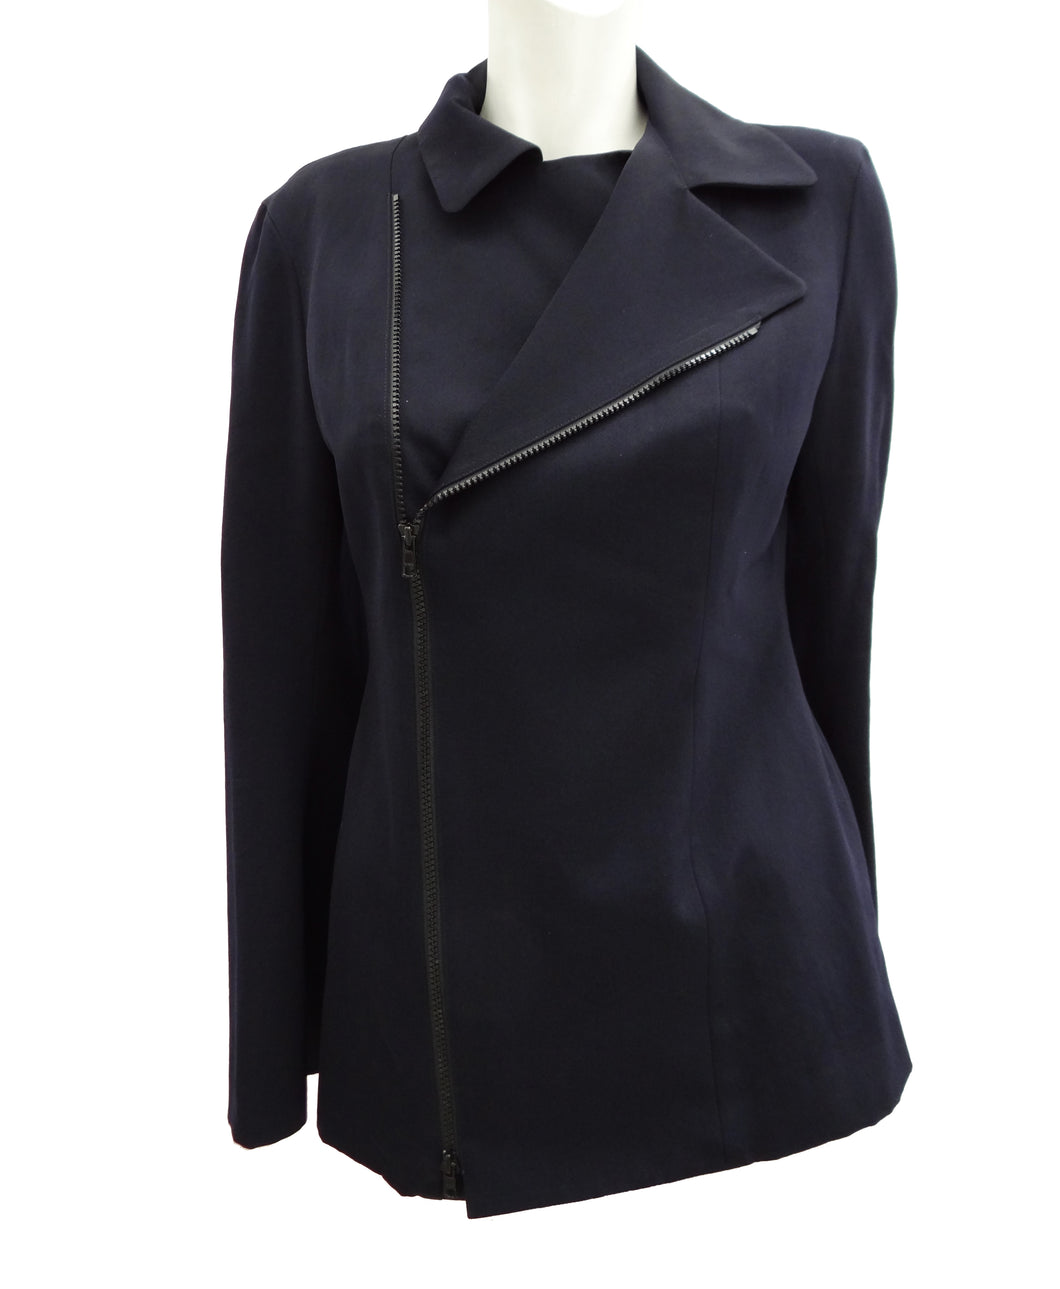 Yohji Yamamoto Y's Navy Tailored Biker Jacket, UK10-12